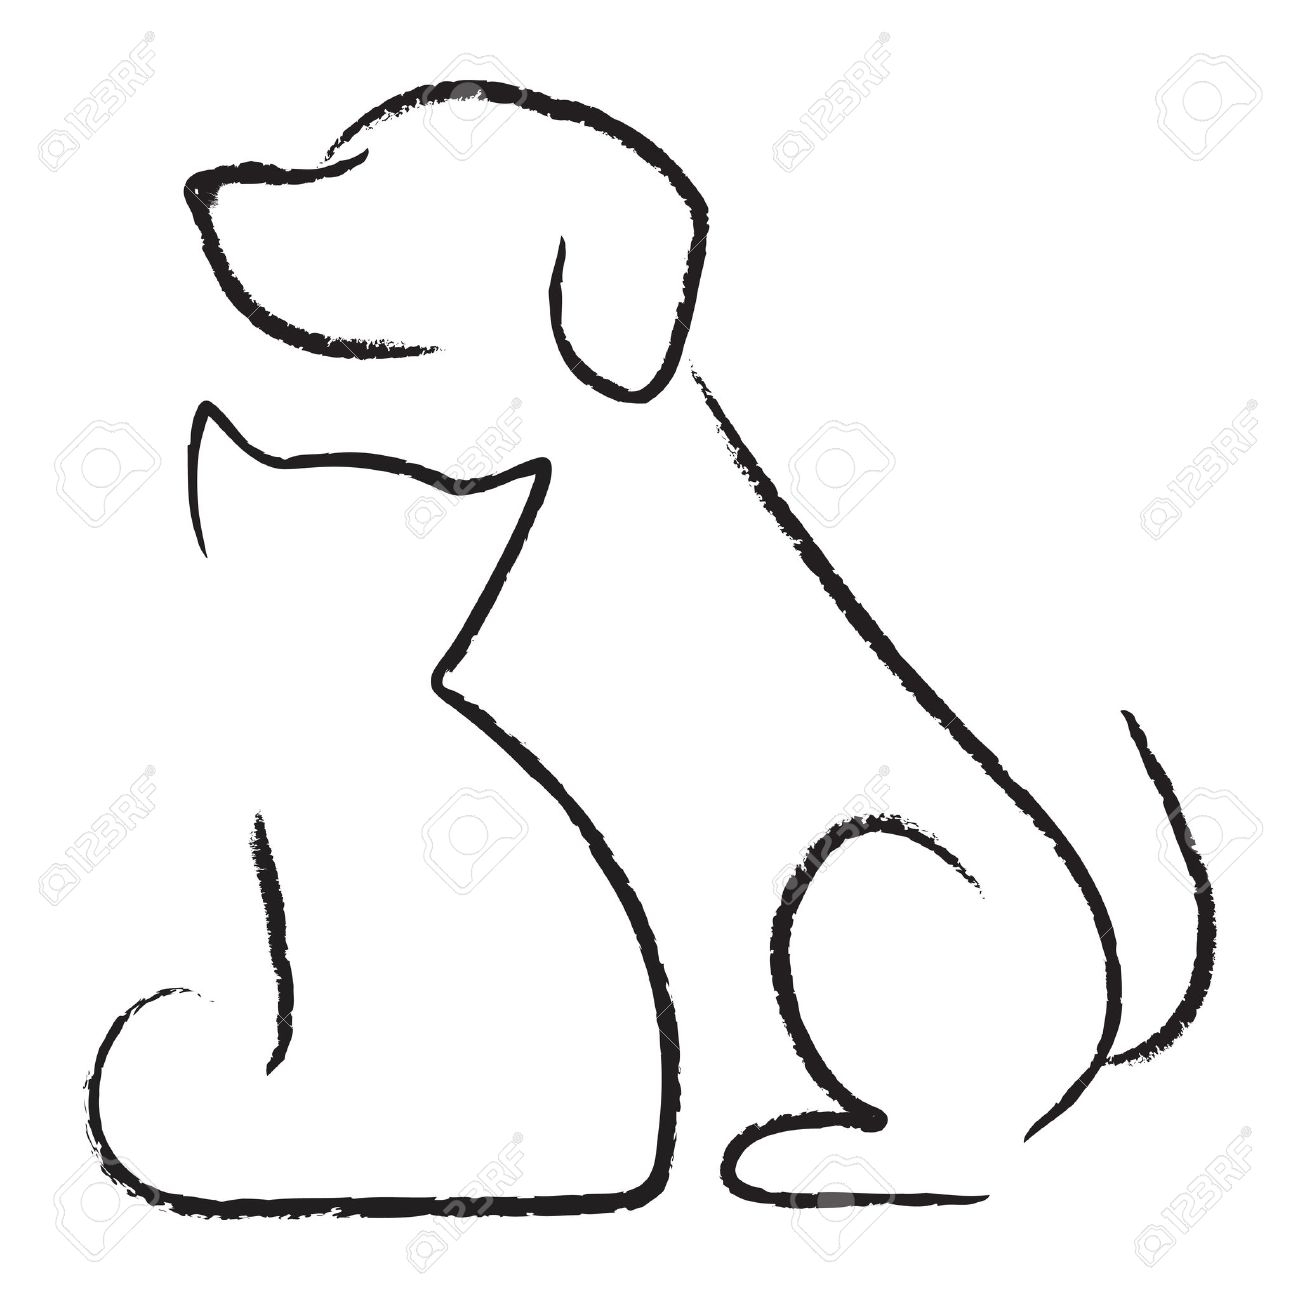 dog cat icon royalty free cliparts vectors and stock illustration rh 123rf com dog and cat silhouette clip art free christmas dog and cat clip art